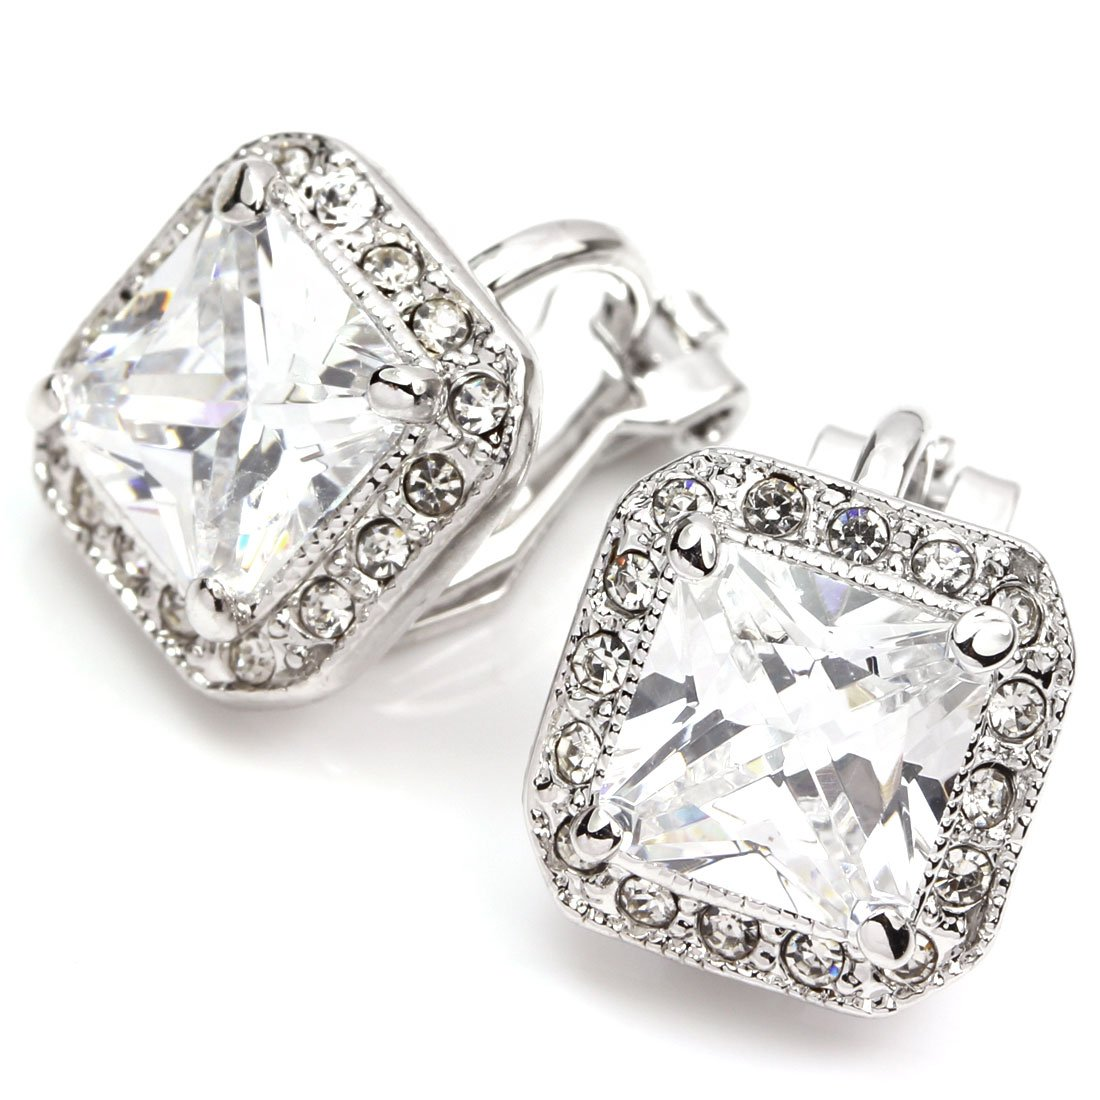 FC JORY White Gold Plated Square CZ Halo Princess Cut Solitaire Clip On Earrings